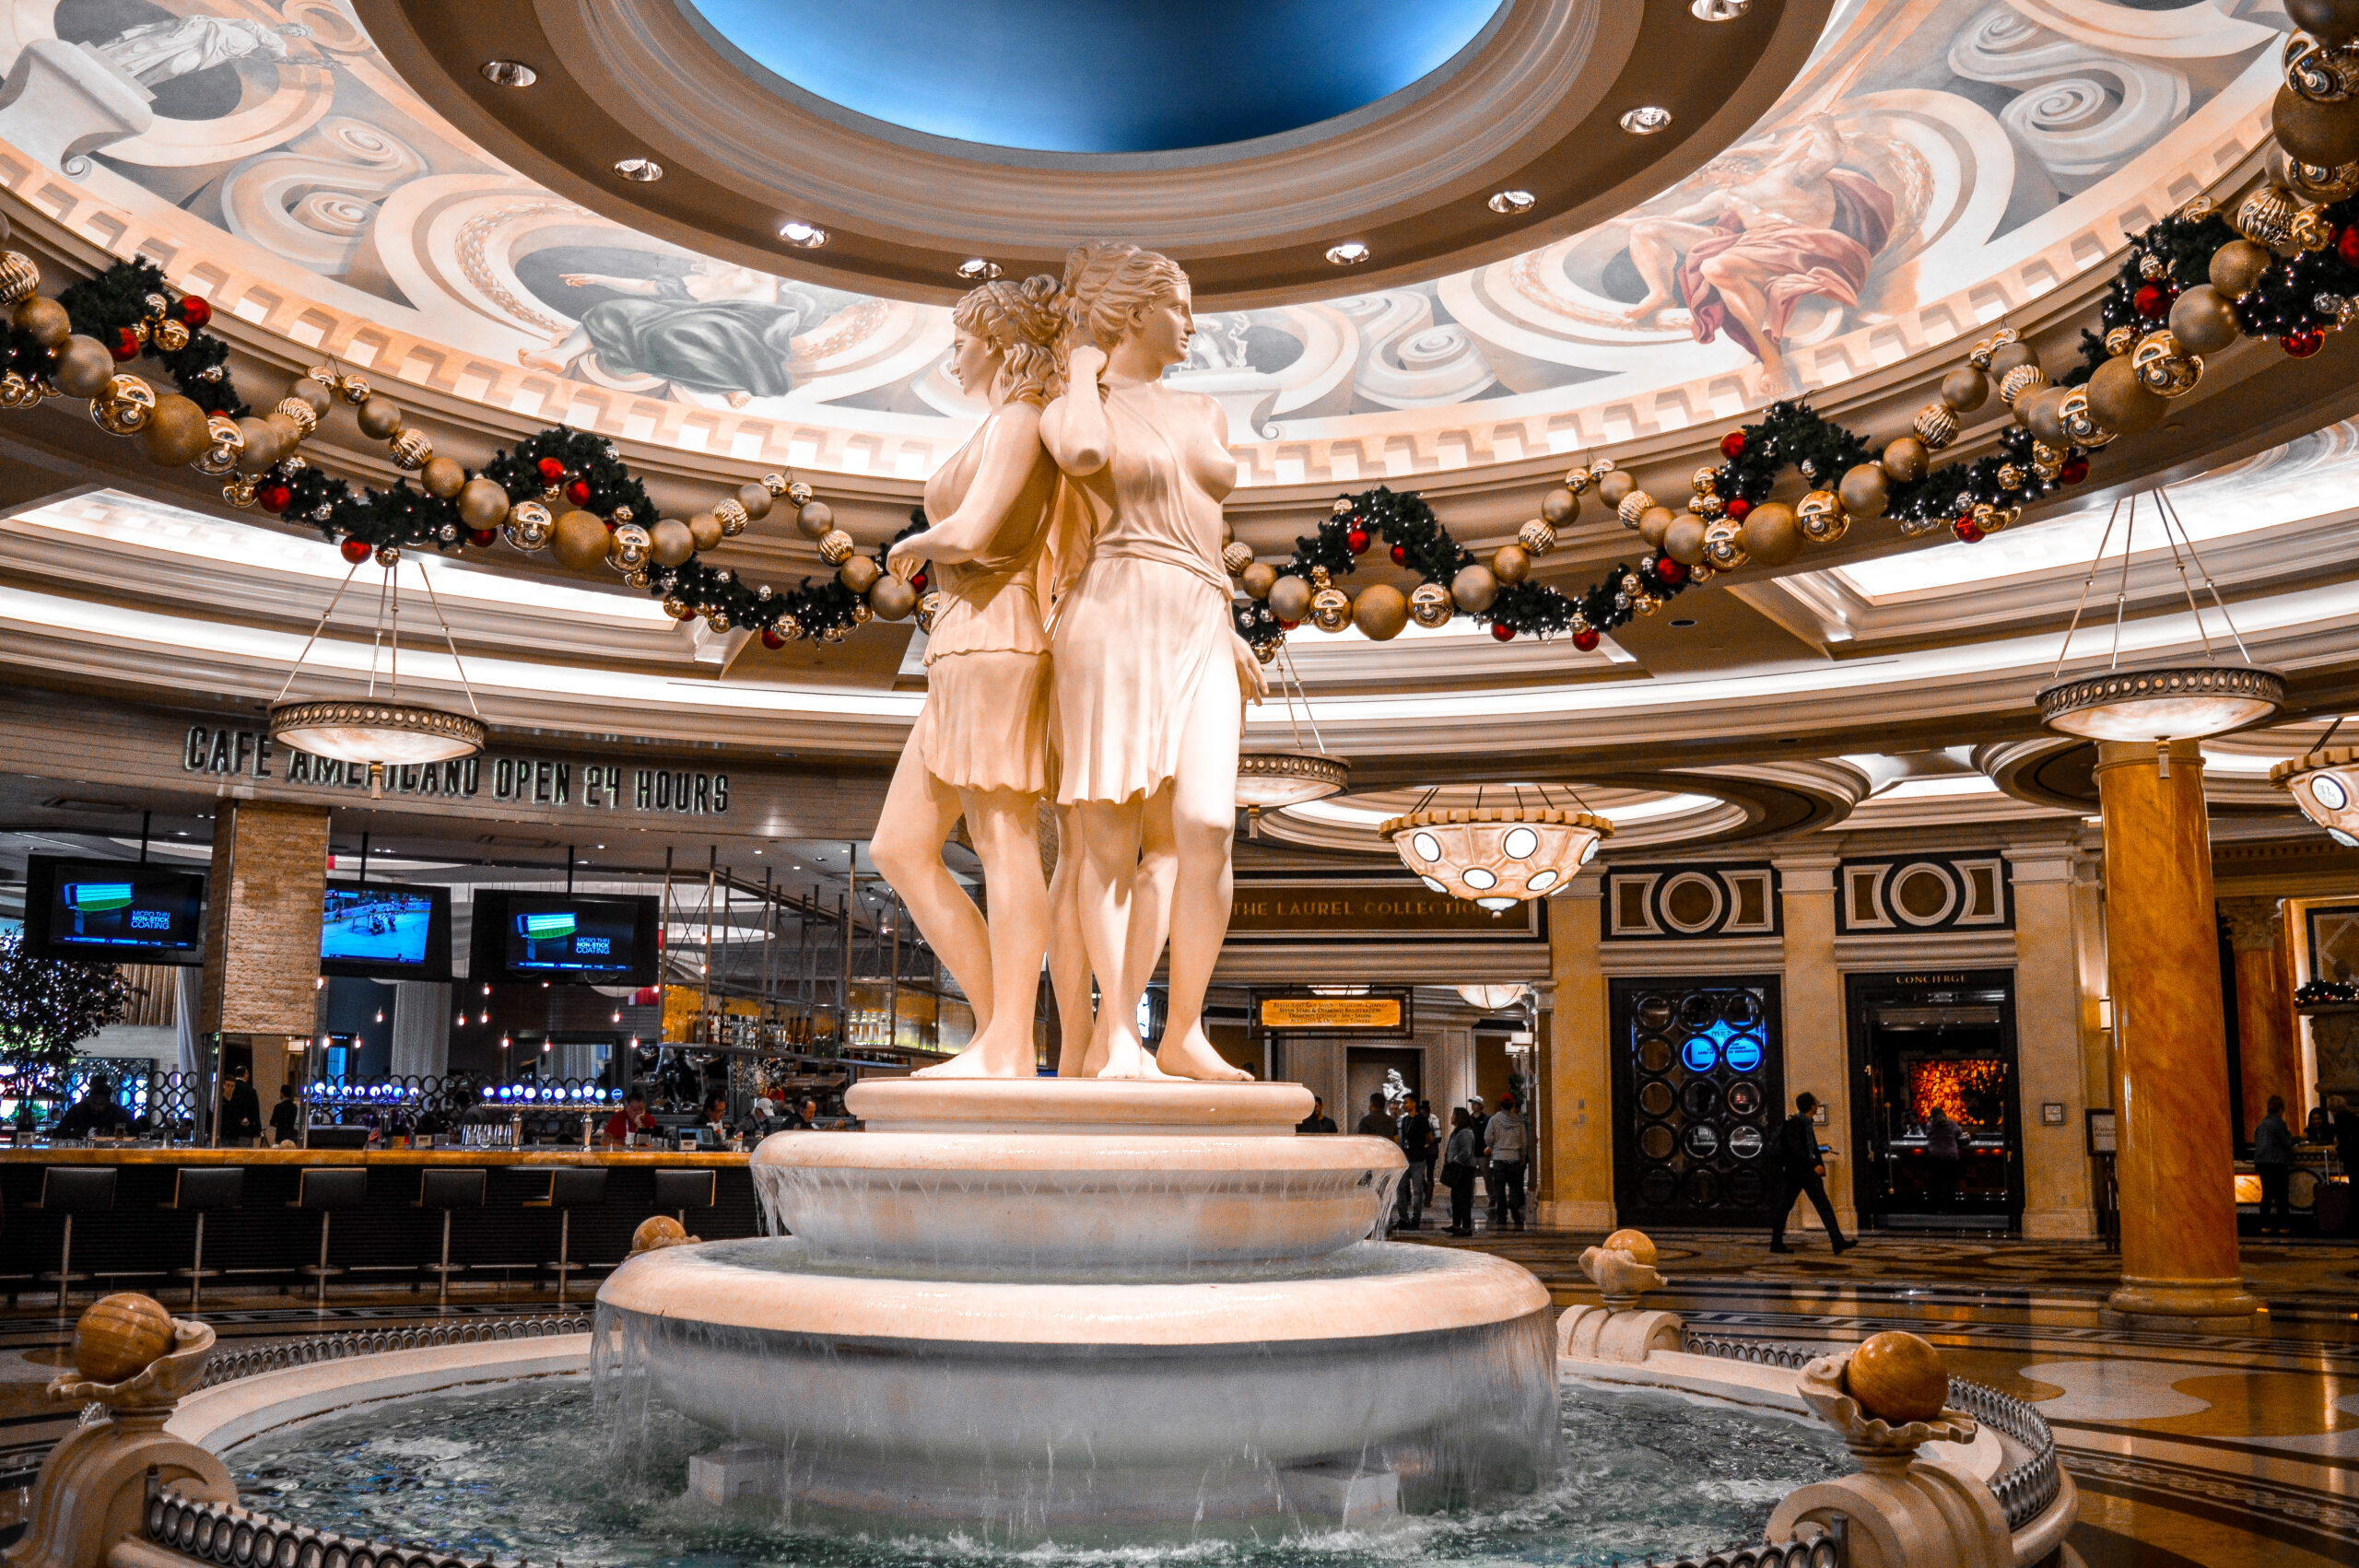 Caesars Palace Reception Las Vegas | How using cashback websites you can get a free holiday | Travel tips saving money | Elle Blonde Luxury Lifestyle Destination